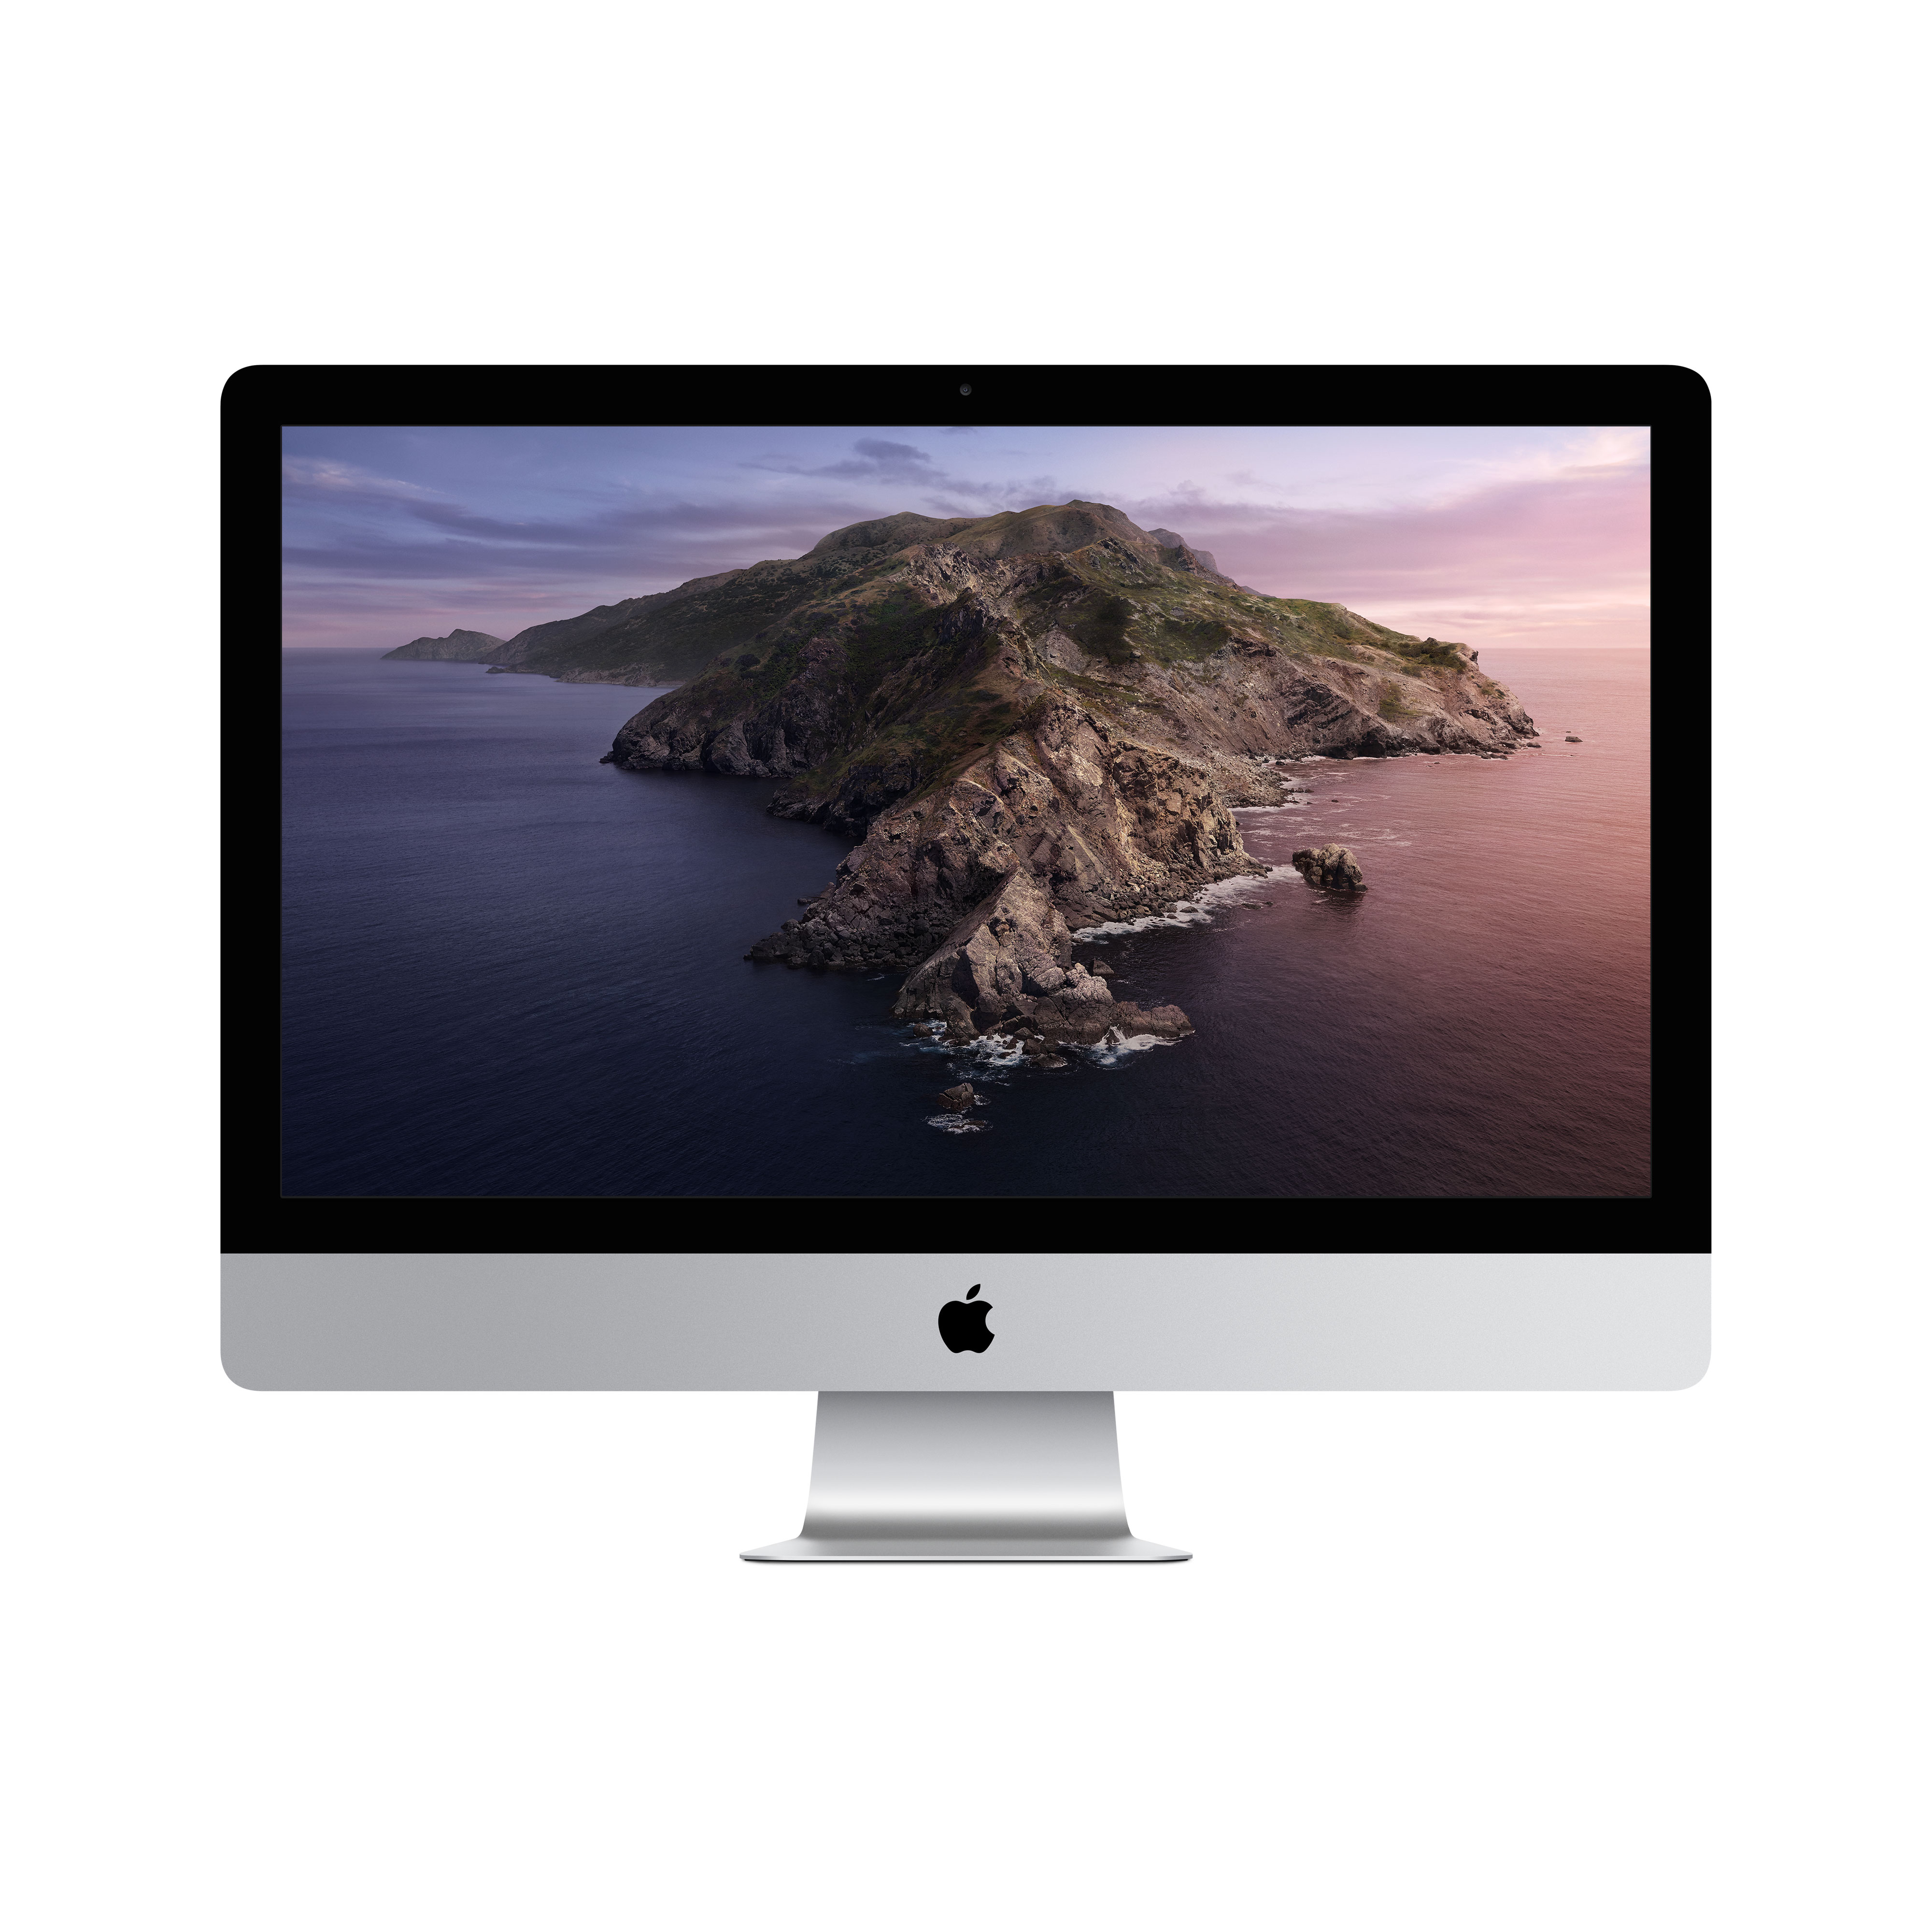 imac_27in_avail_pdp_US_16.53.50PM